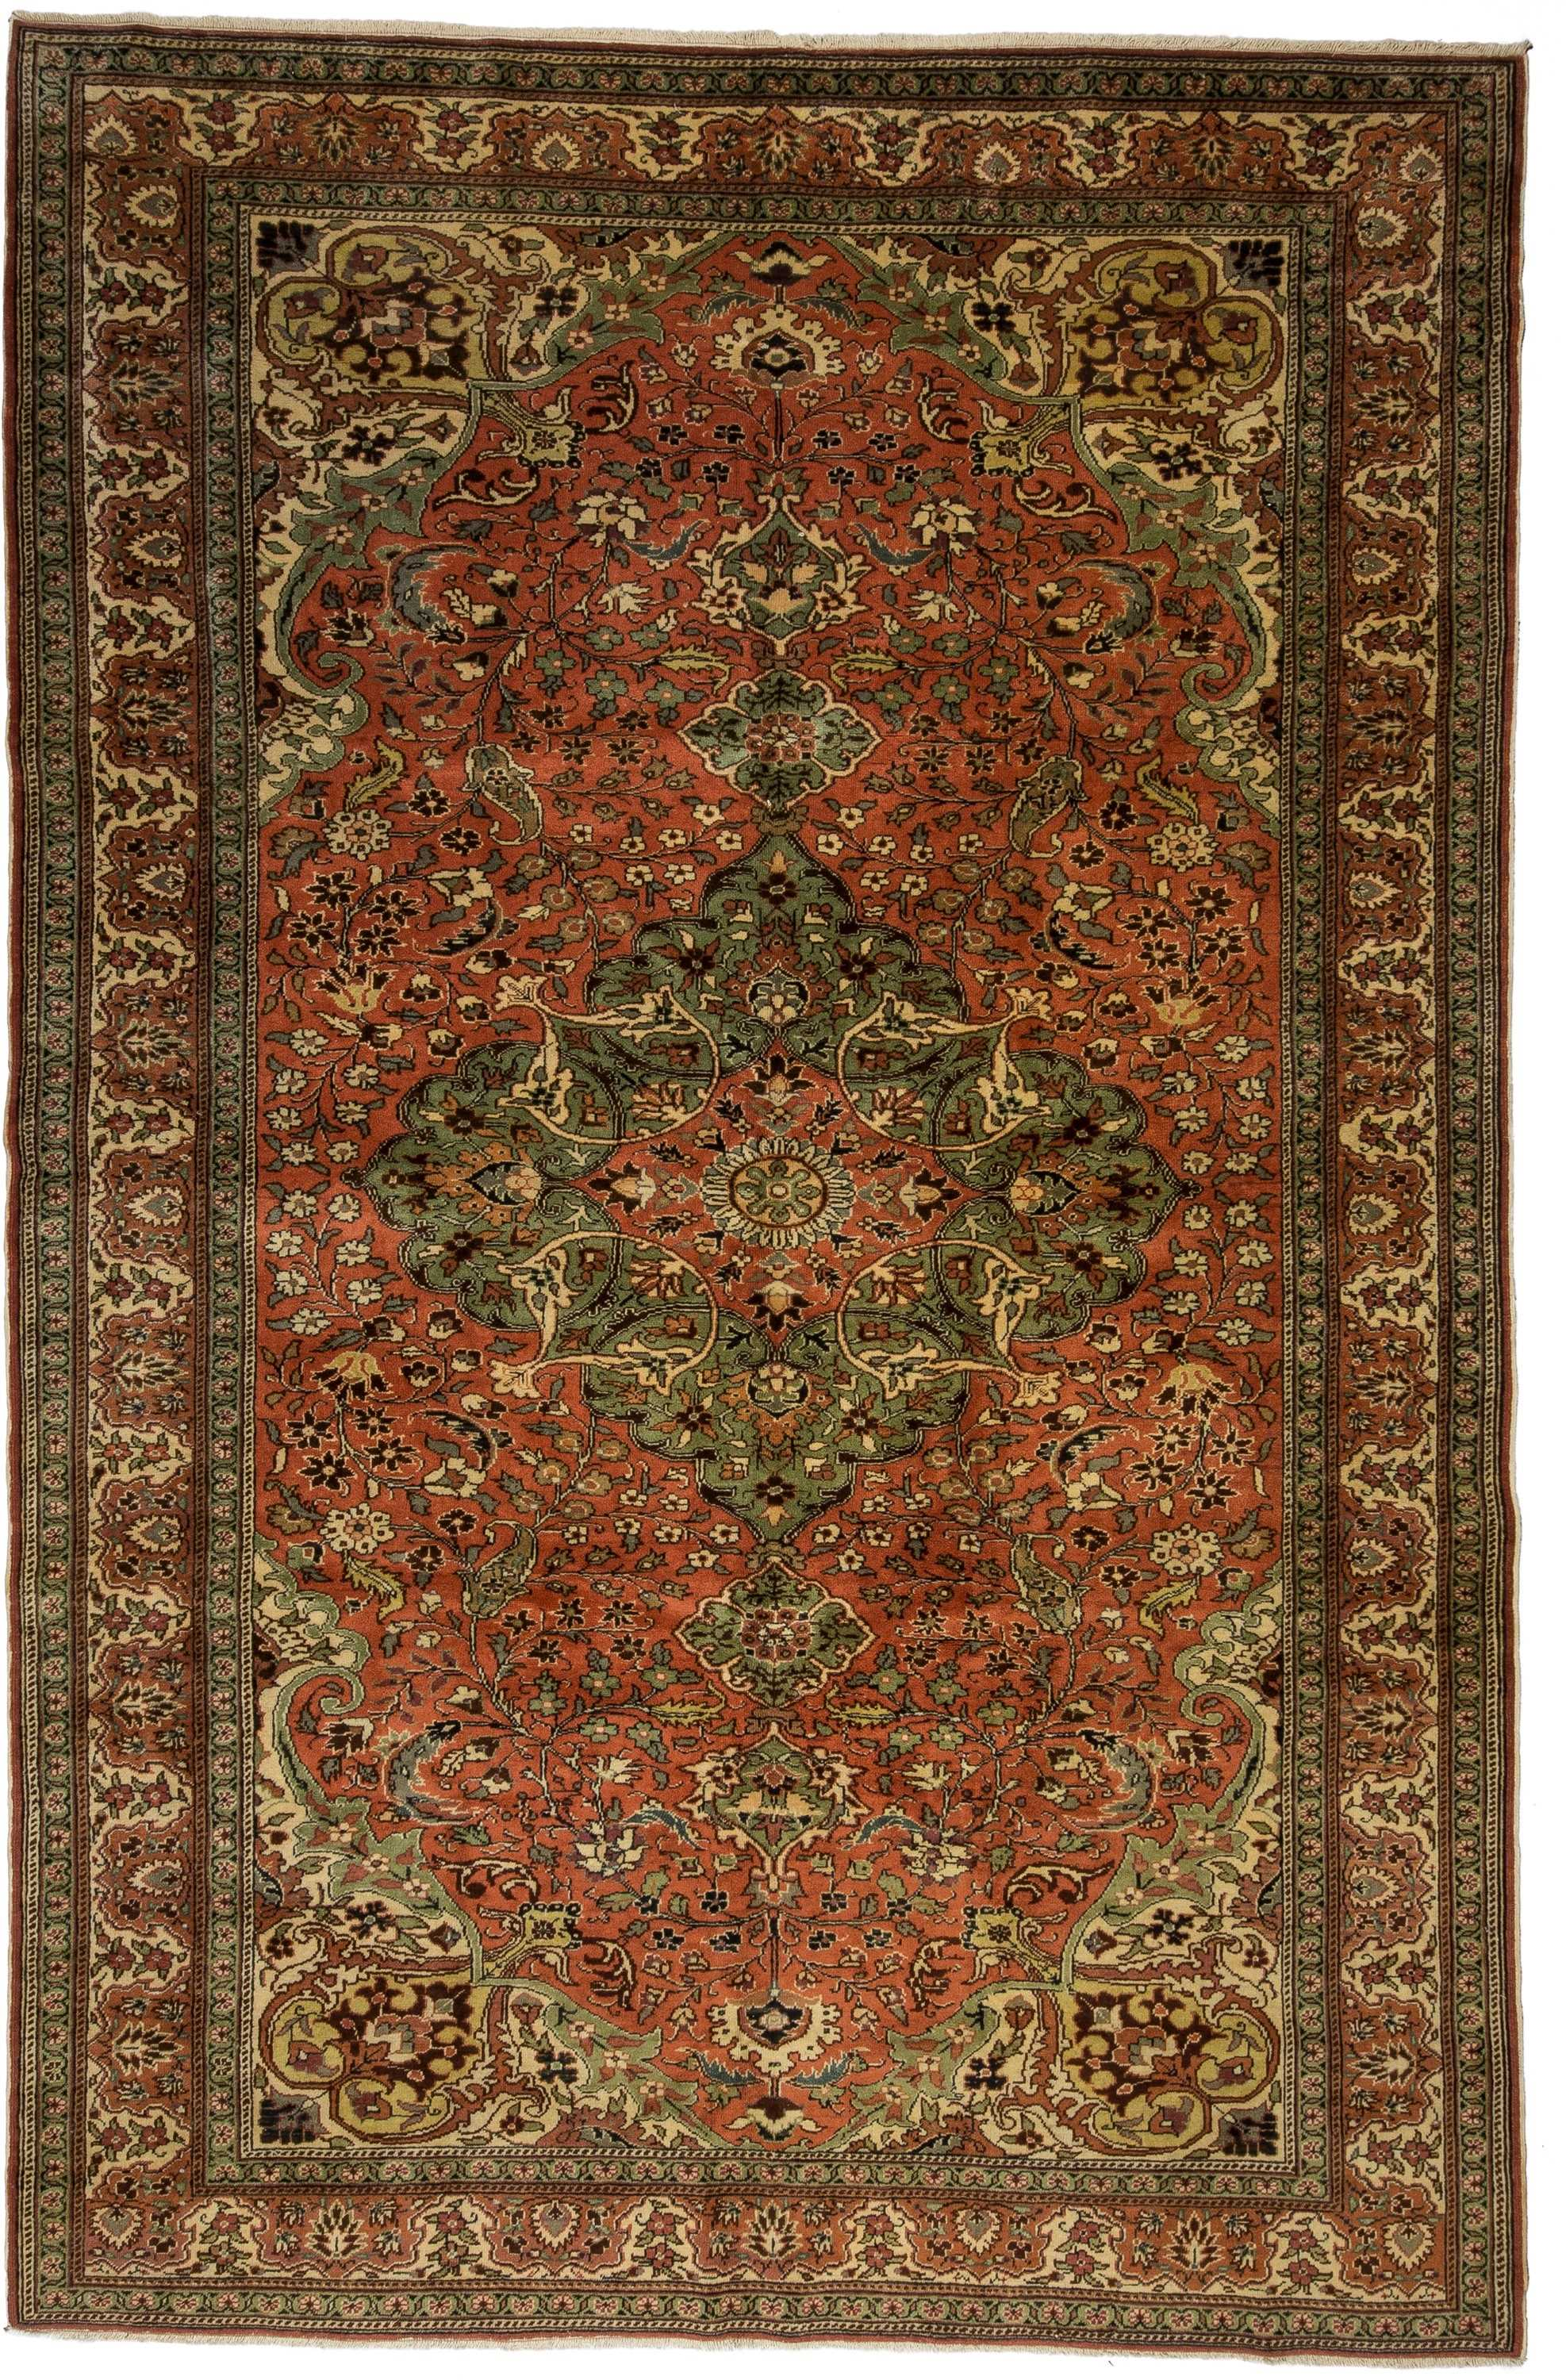 Vintage Turkish Rug 1541